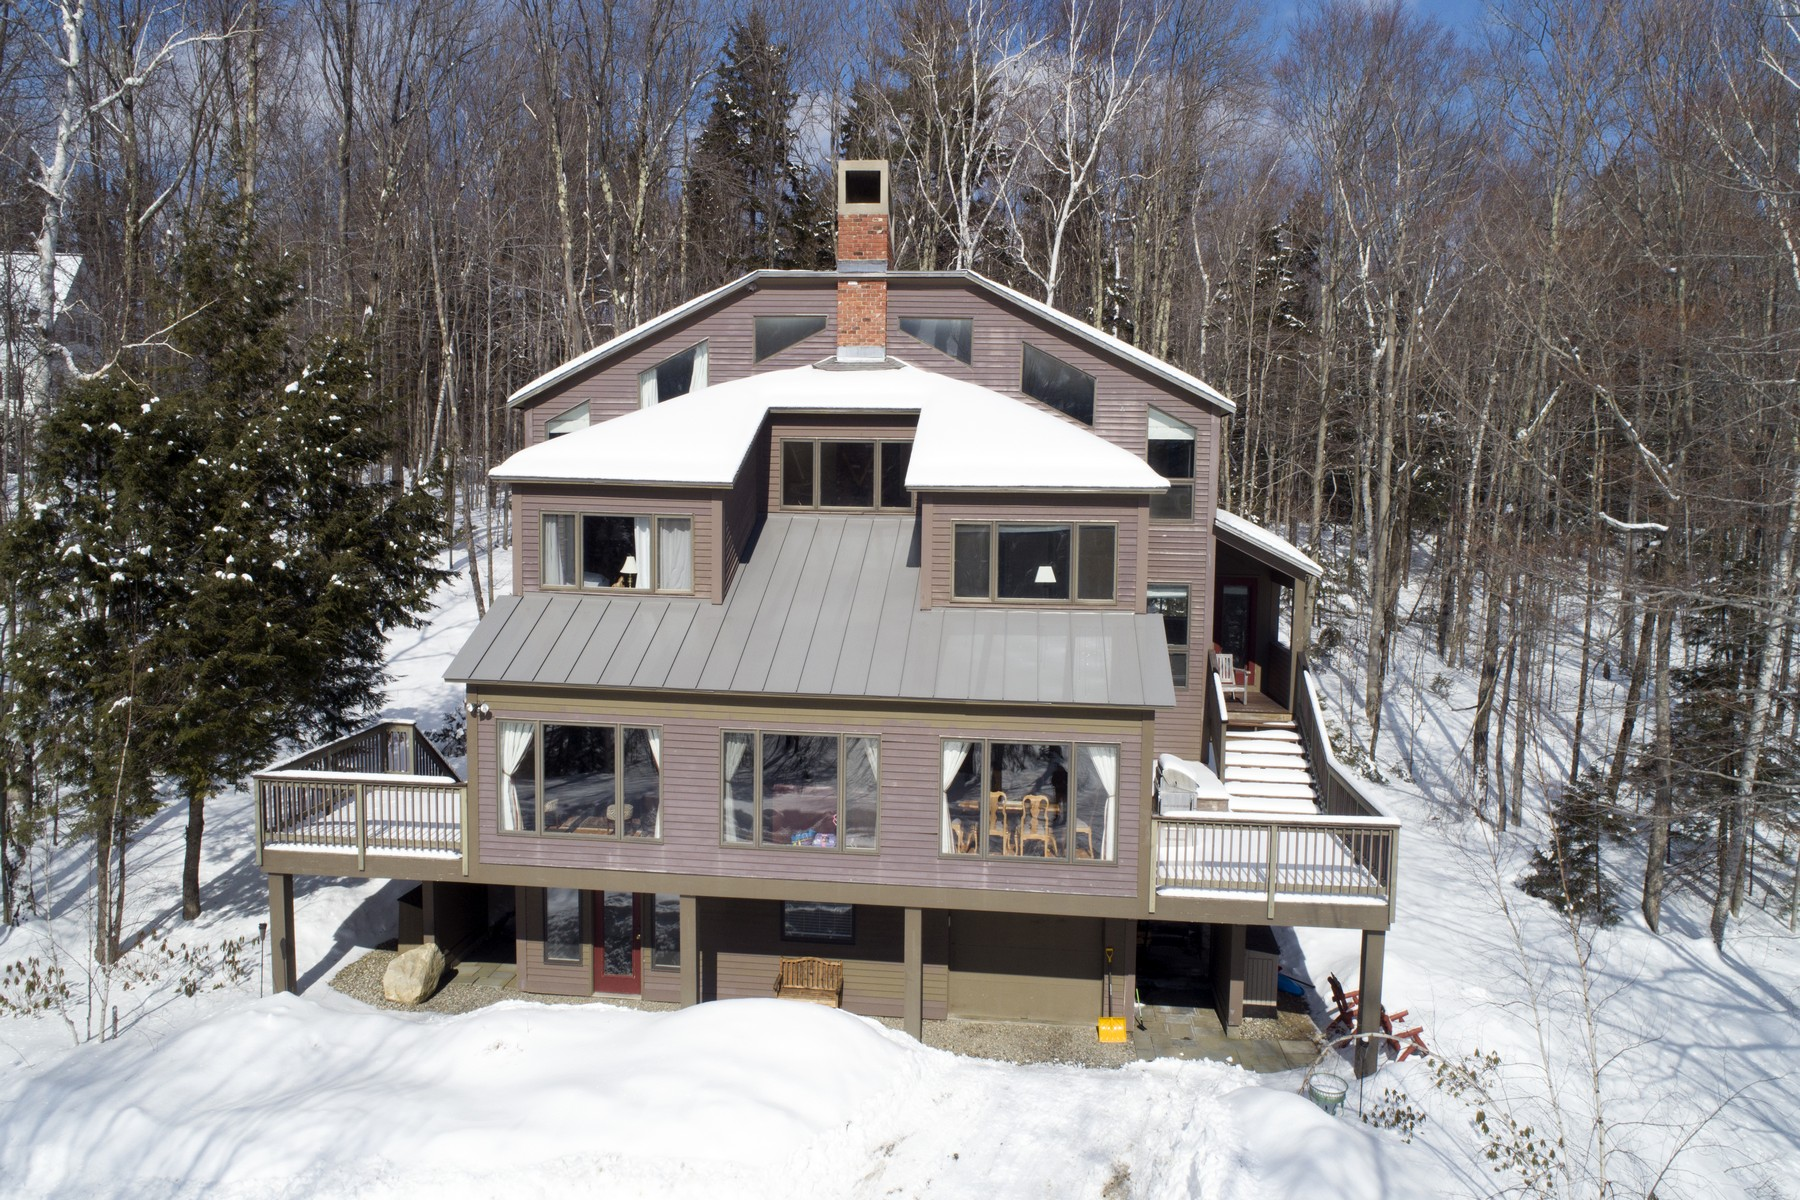 Single Family Home for Sale at 147 High Meadow Road, Winhall 147 High Meadow Rd Winhall, Vermont 05340 United States